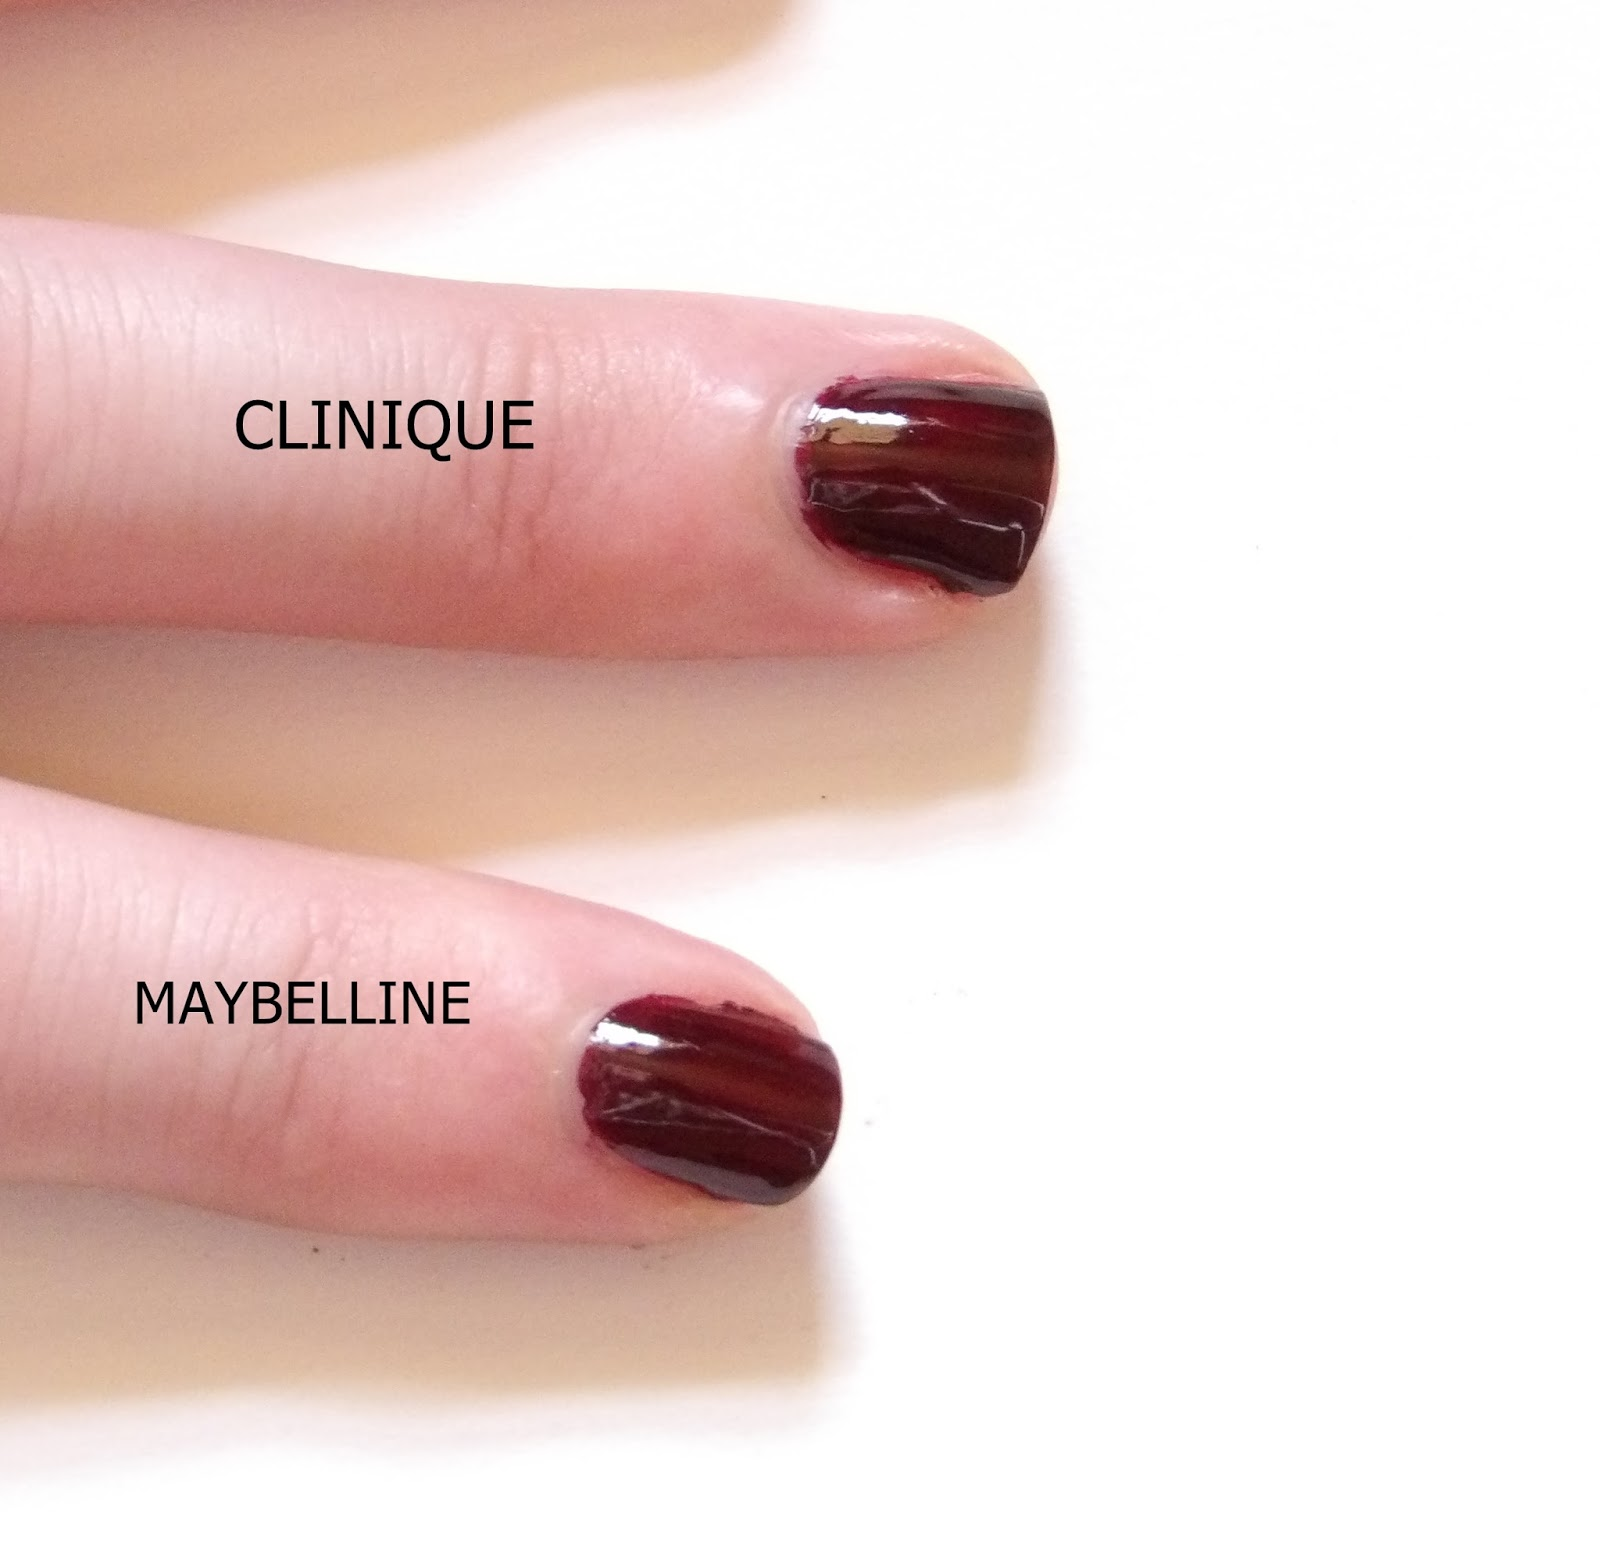 CLINIQUE BLACK HONEY VS MAYBELLINE BURGUNDY KISS